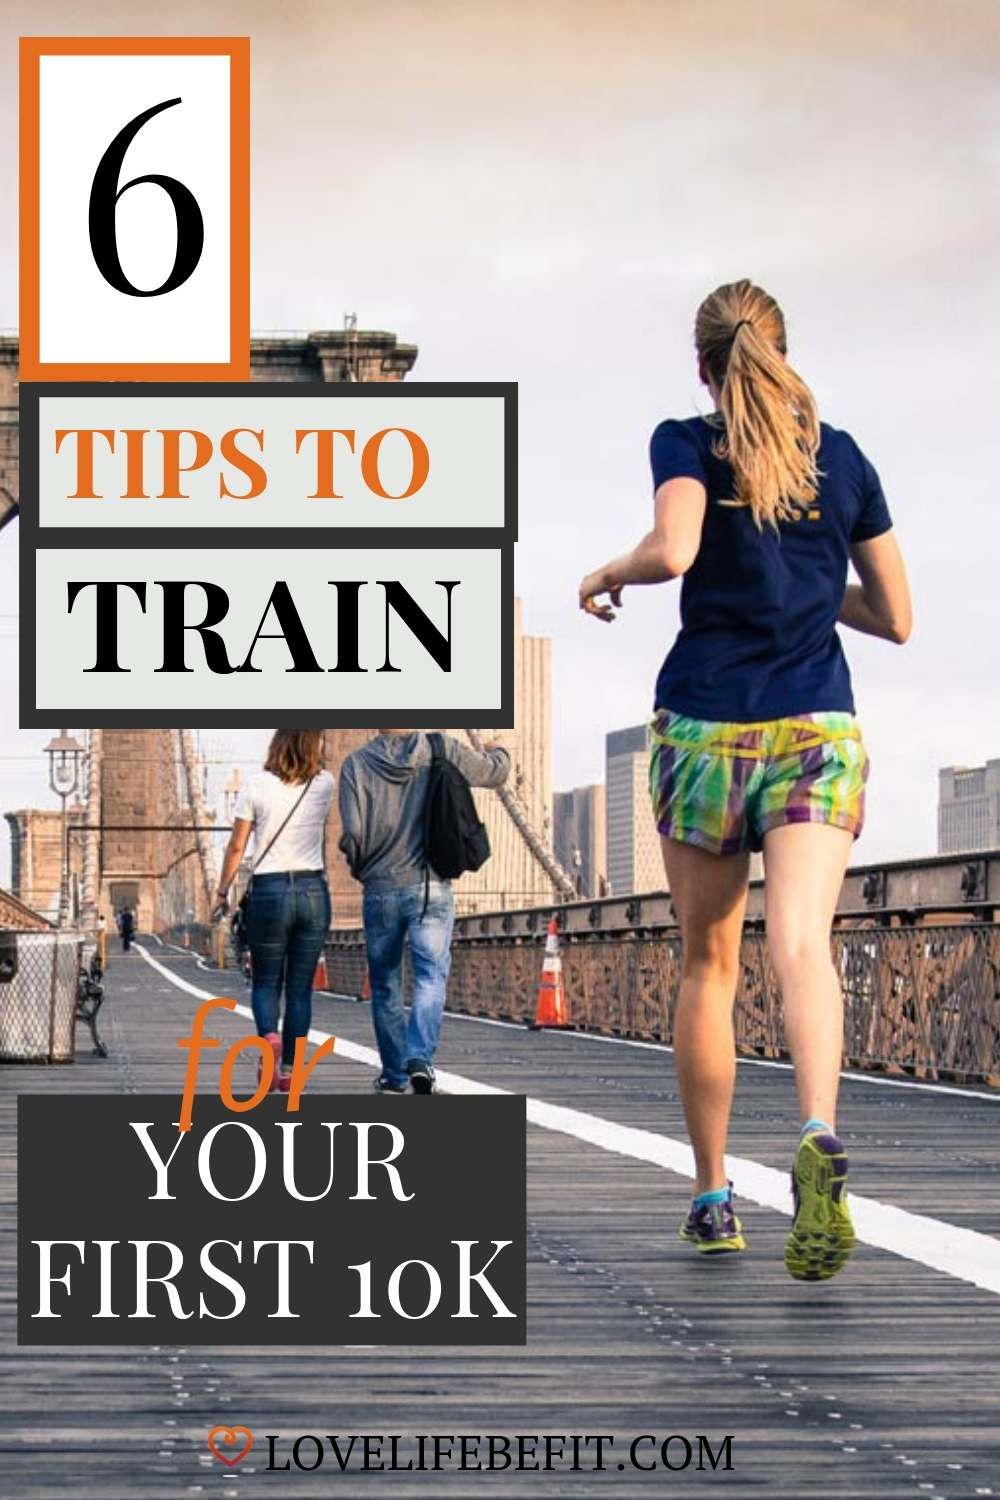 For a beginner runner, 10K is an ideal distance. It's far enough to be a challenge, without destroying you before you even get to the start line. A 10K is a fun mix of speed and endurance. Follow these tips to get the most out of your training…#running #runningtips